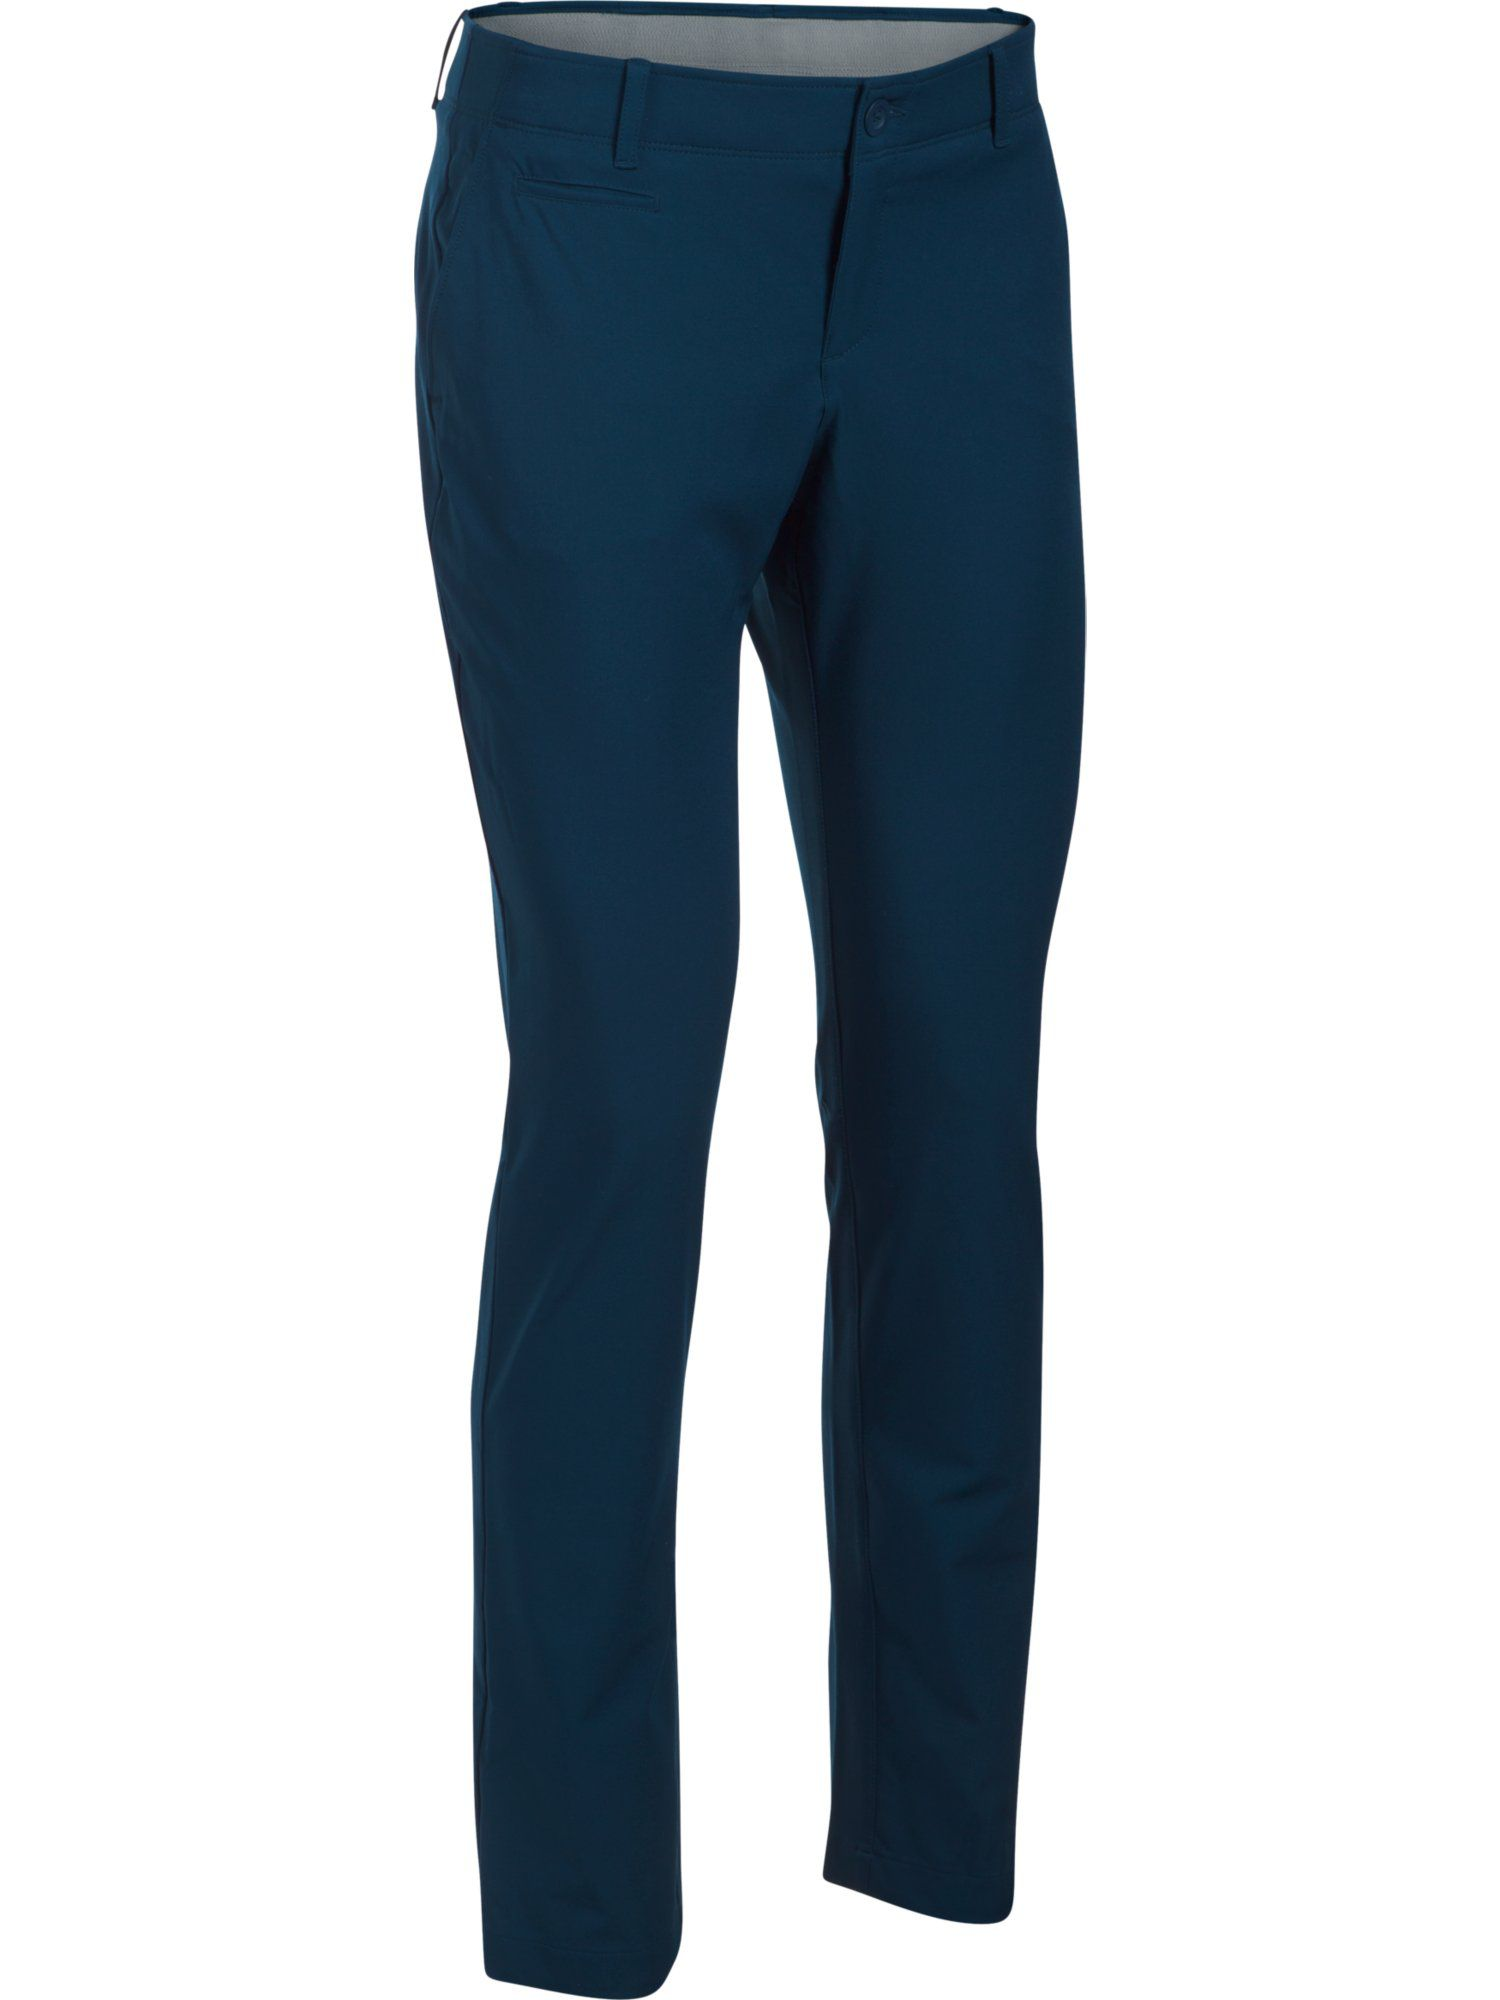 Under Armour Links Trousers, Blue